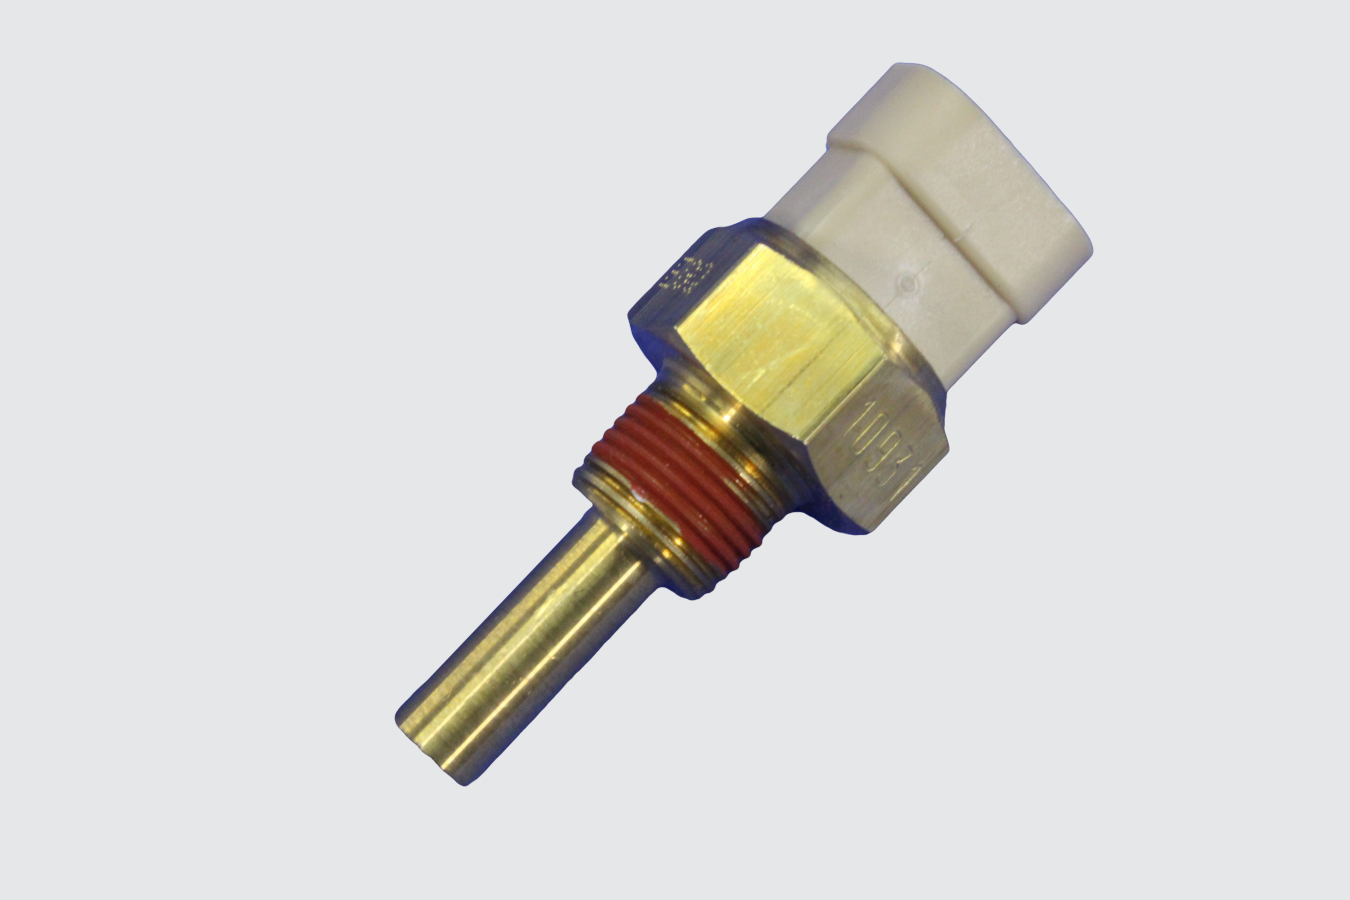 36898922 - SENSOR, TEMPERATURE 3/8IN NPT